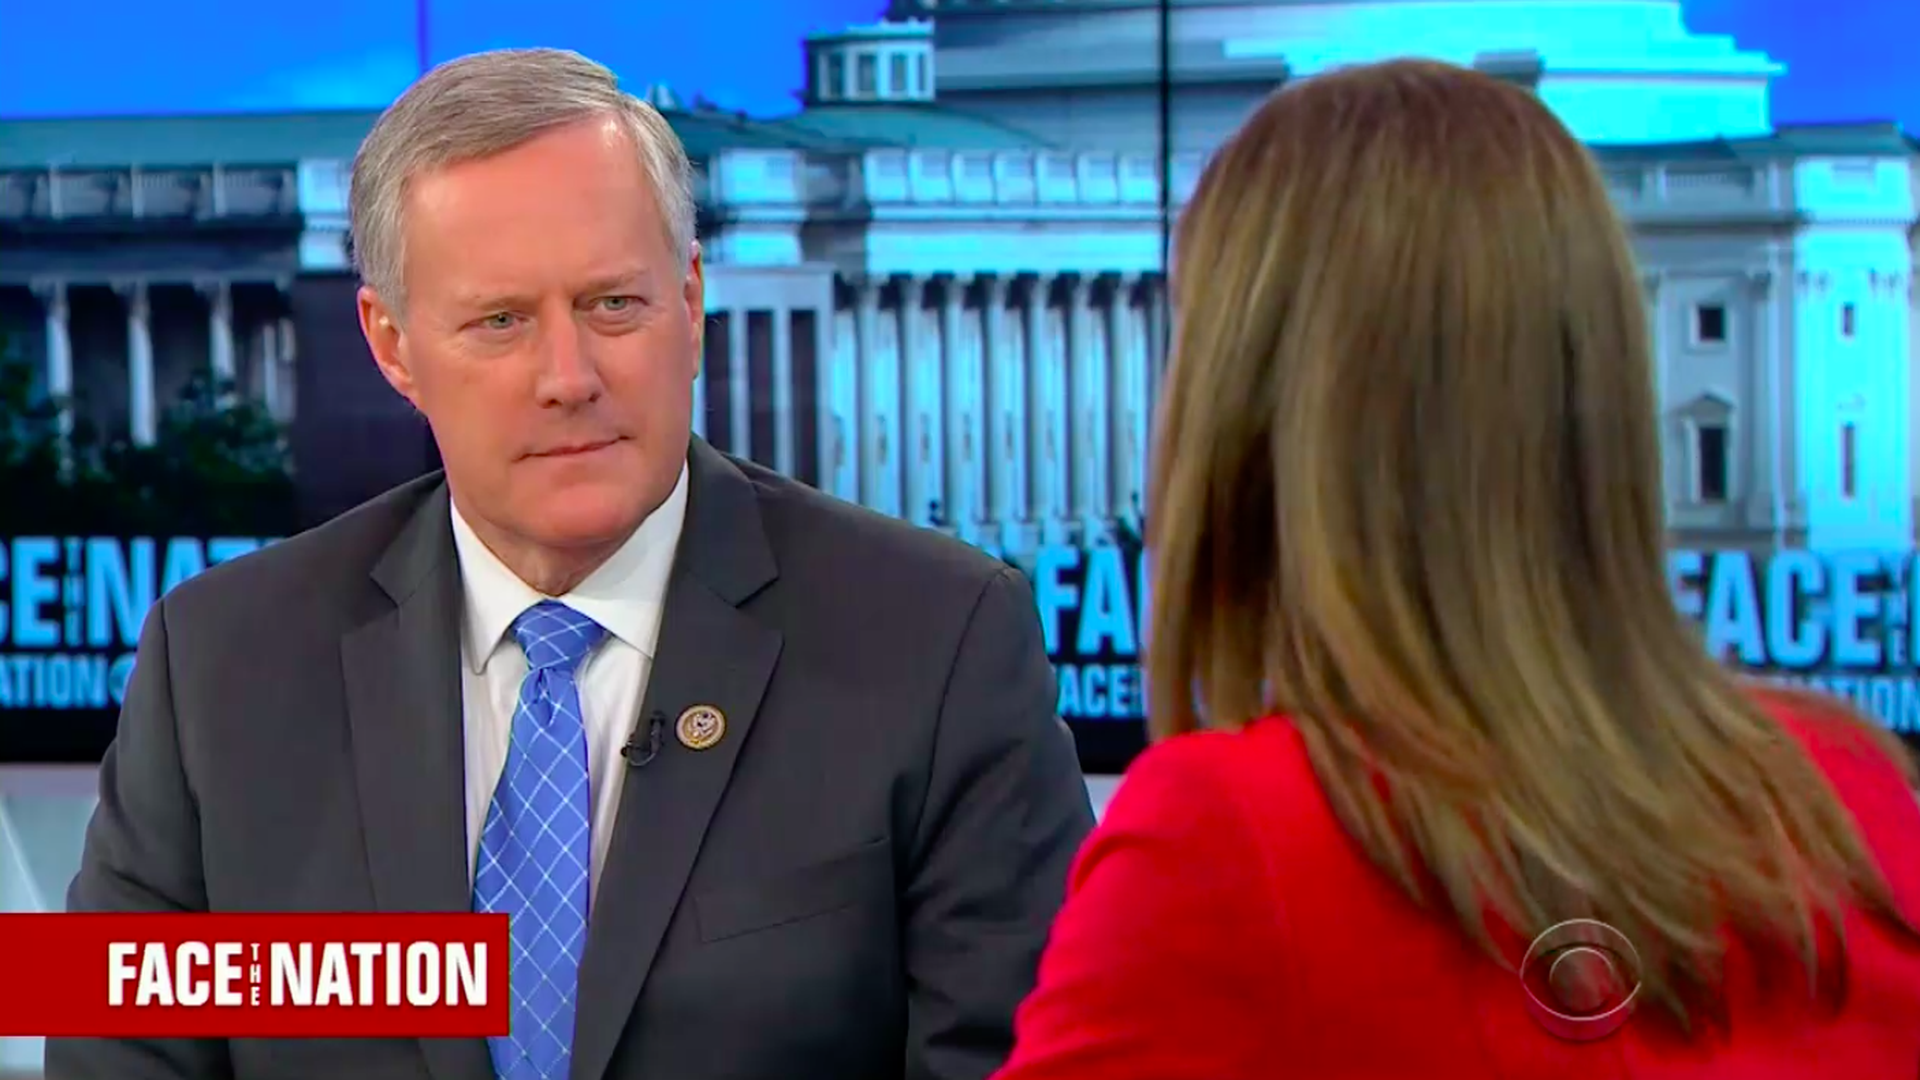 Rep. Mark Meadows on Face the Nation.